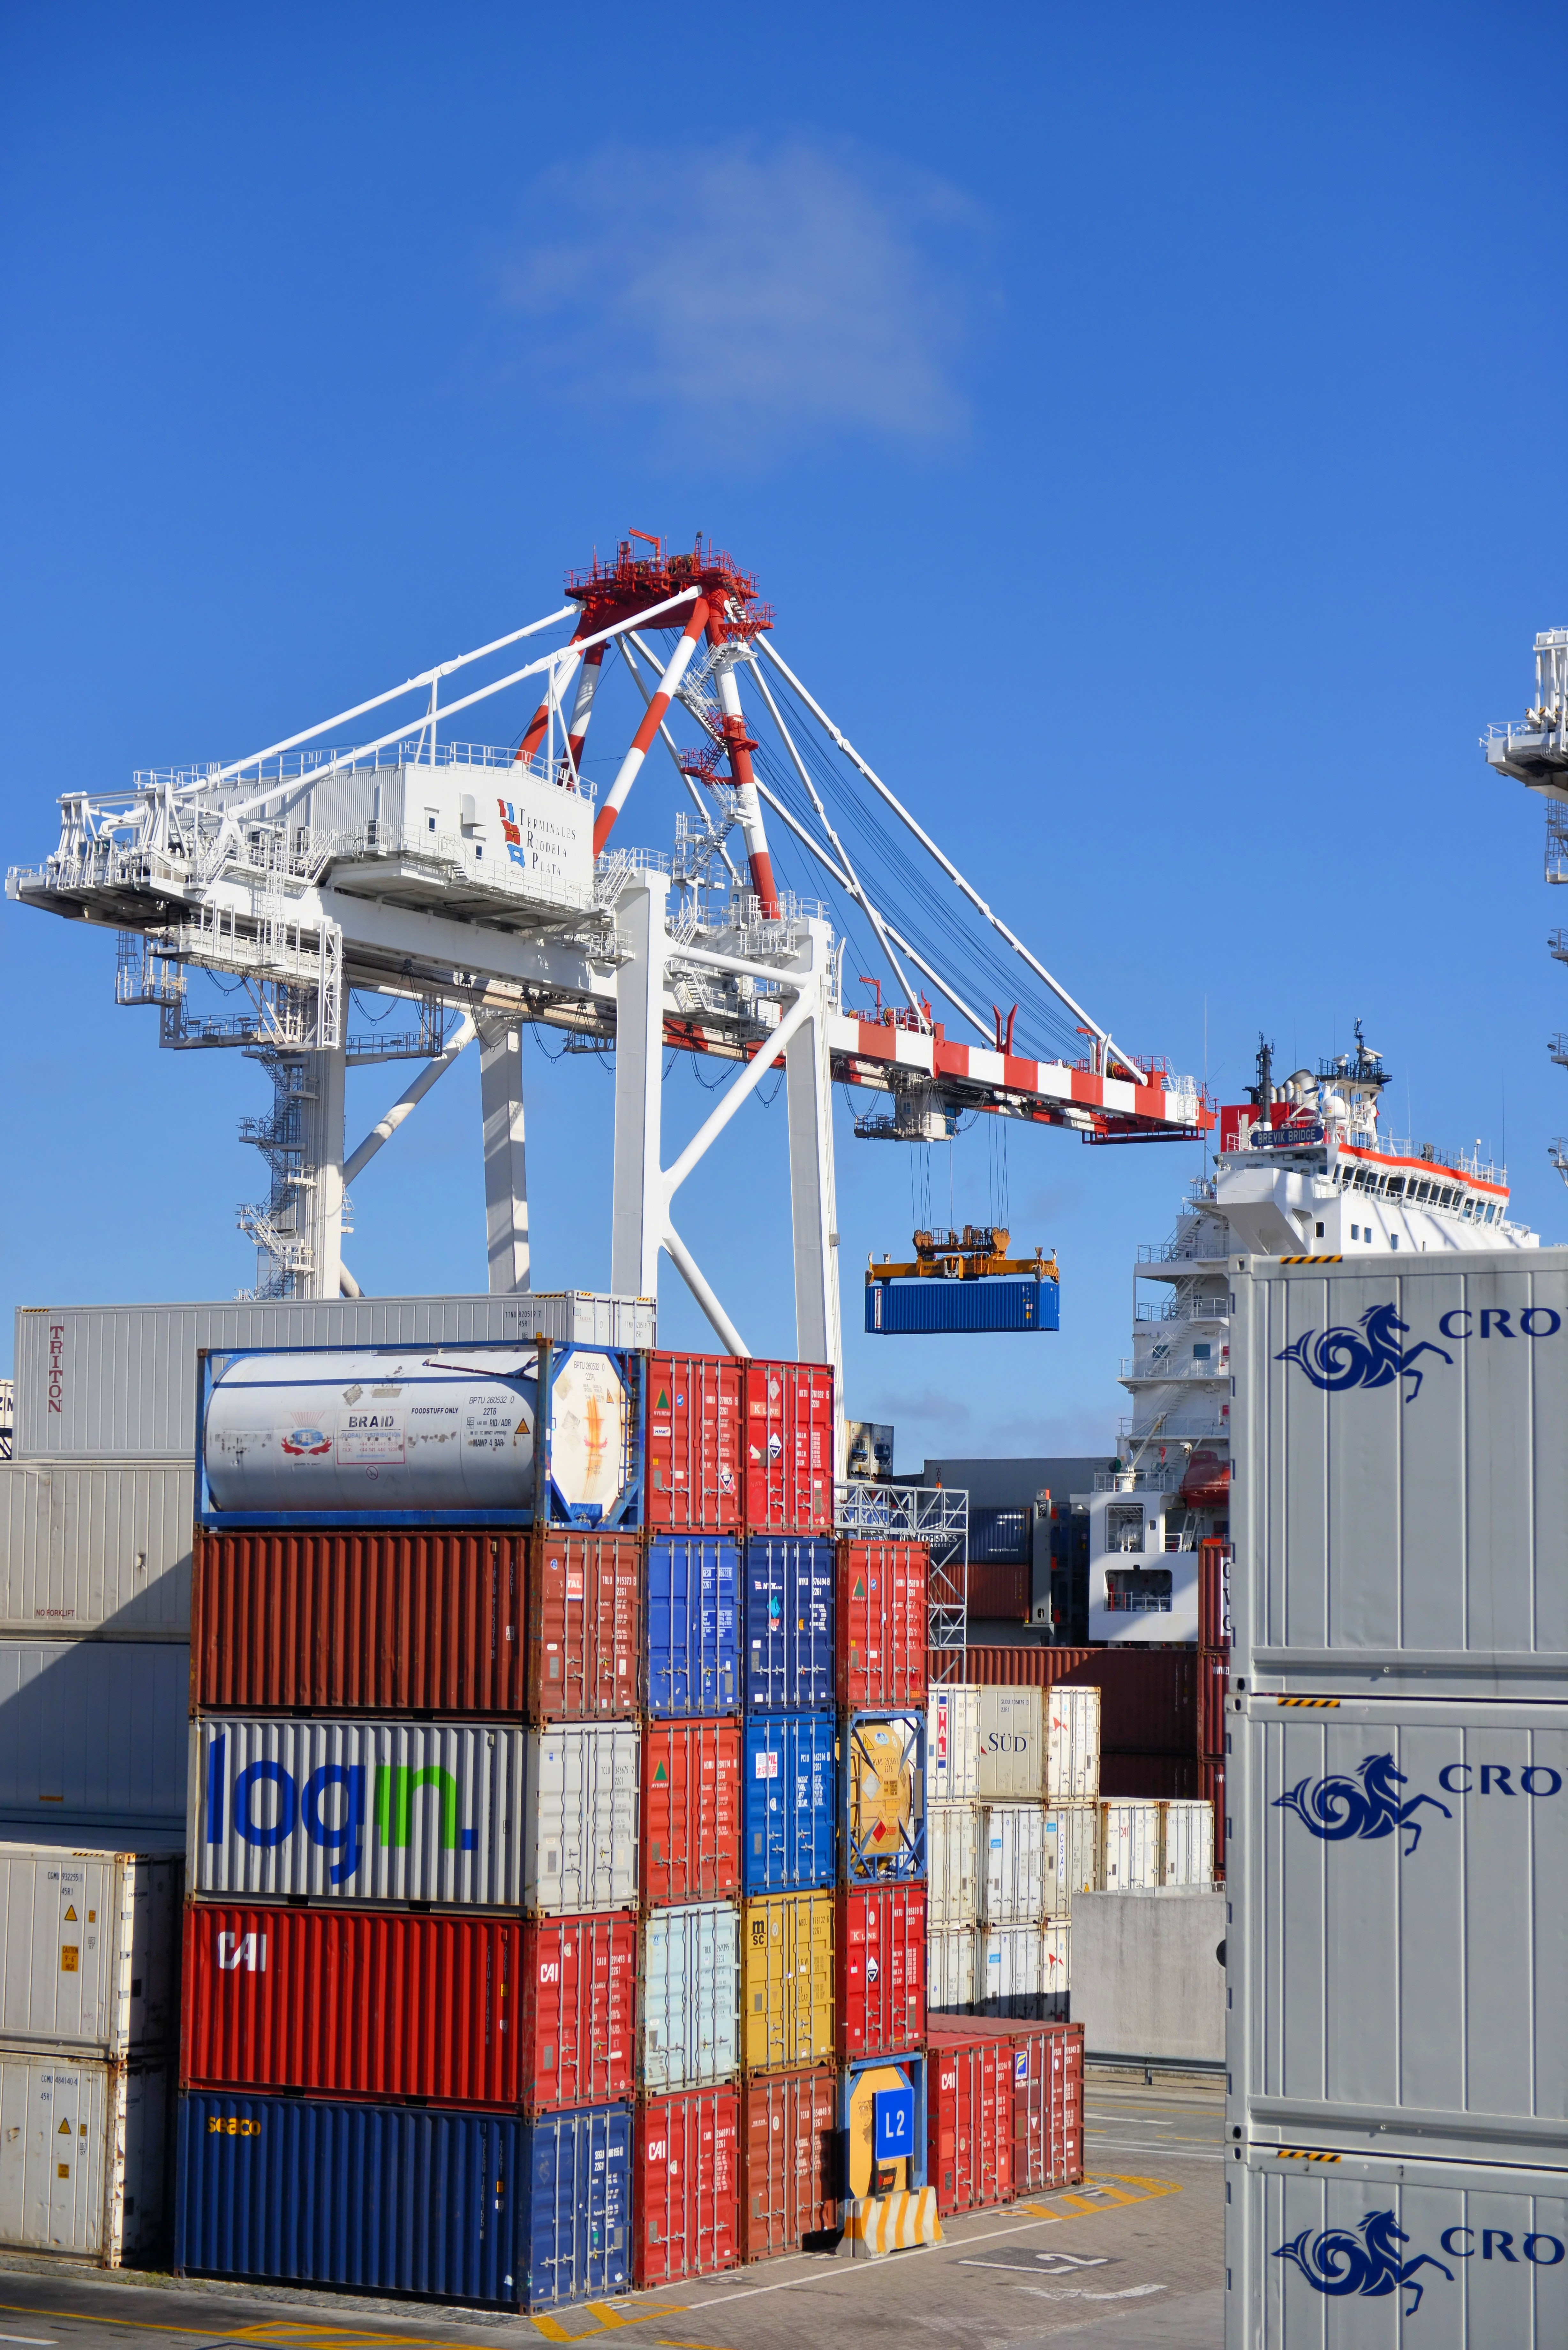 Need for improvement in Logistics Industry